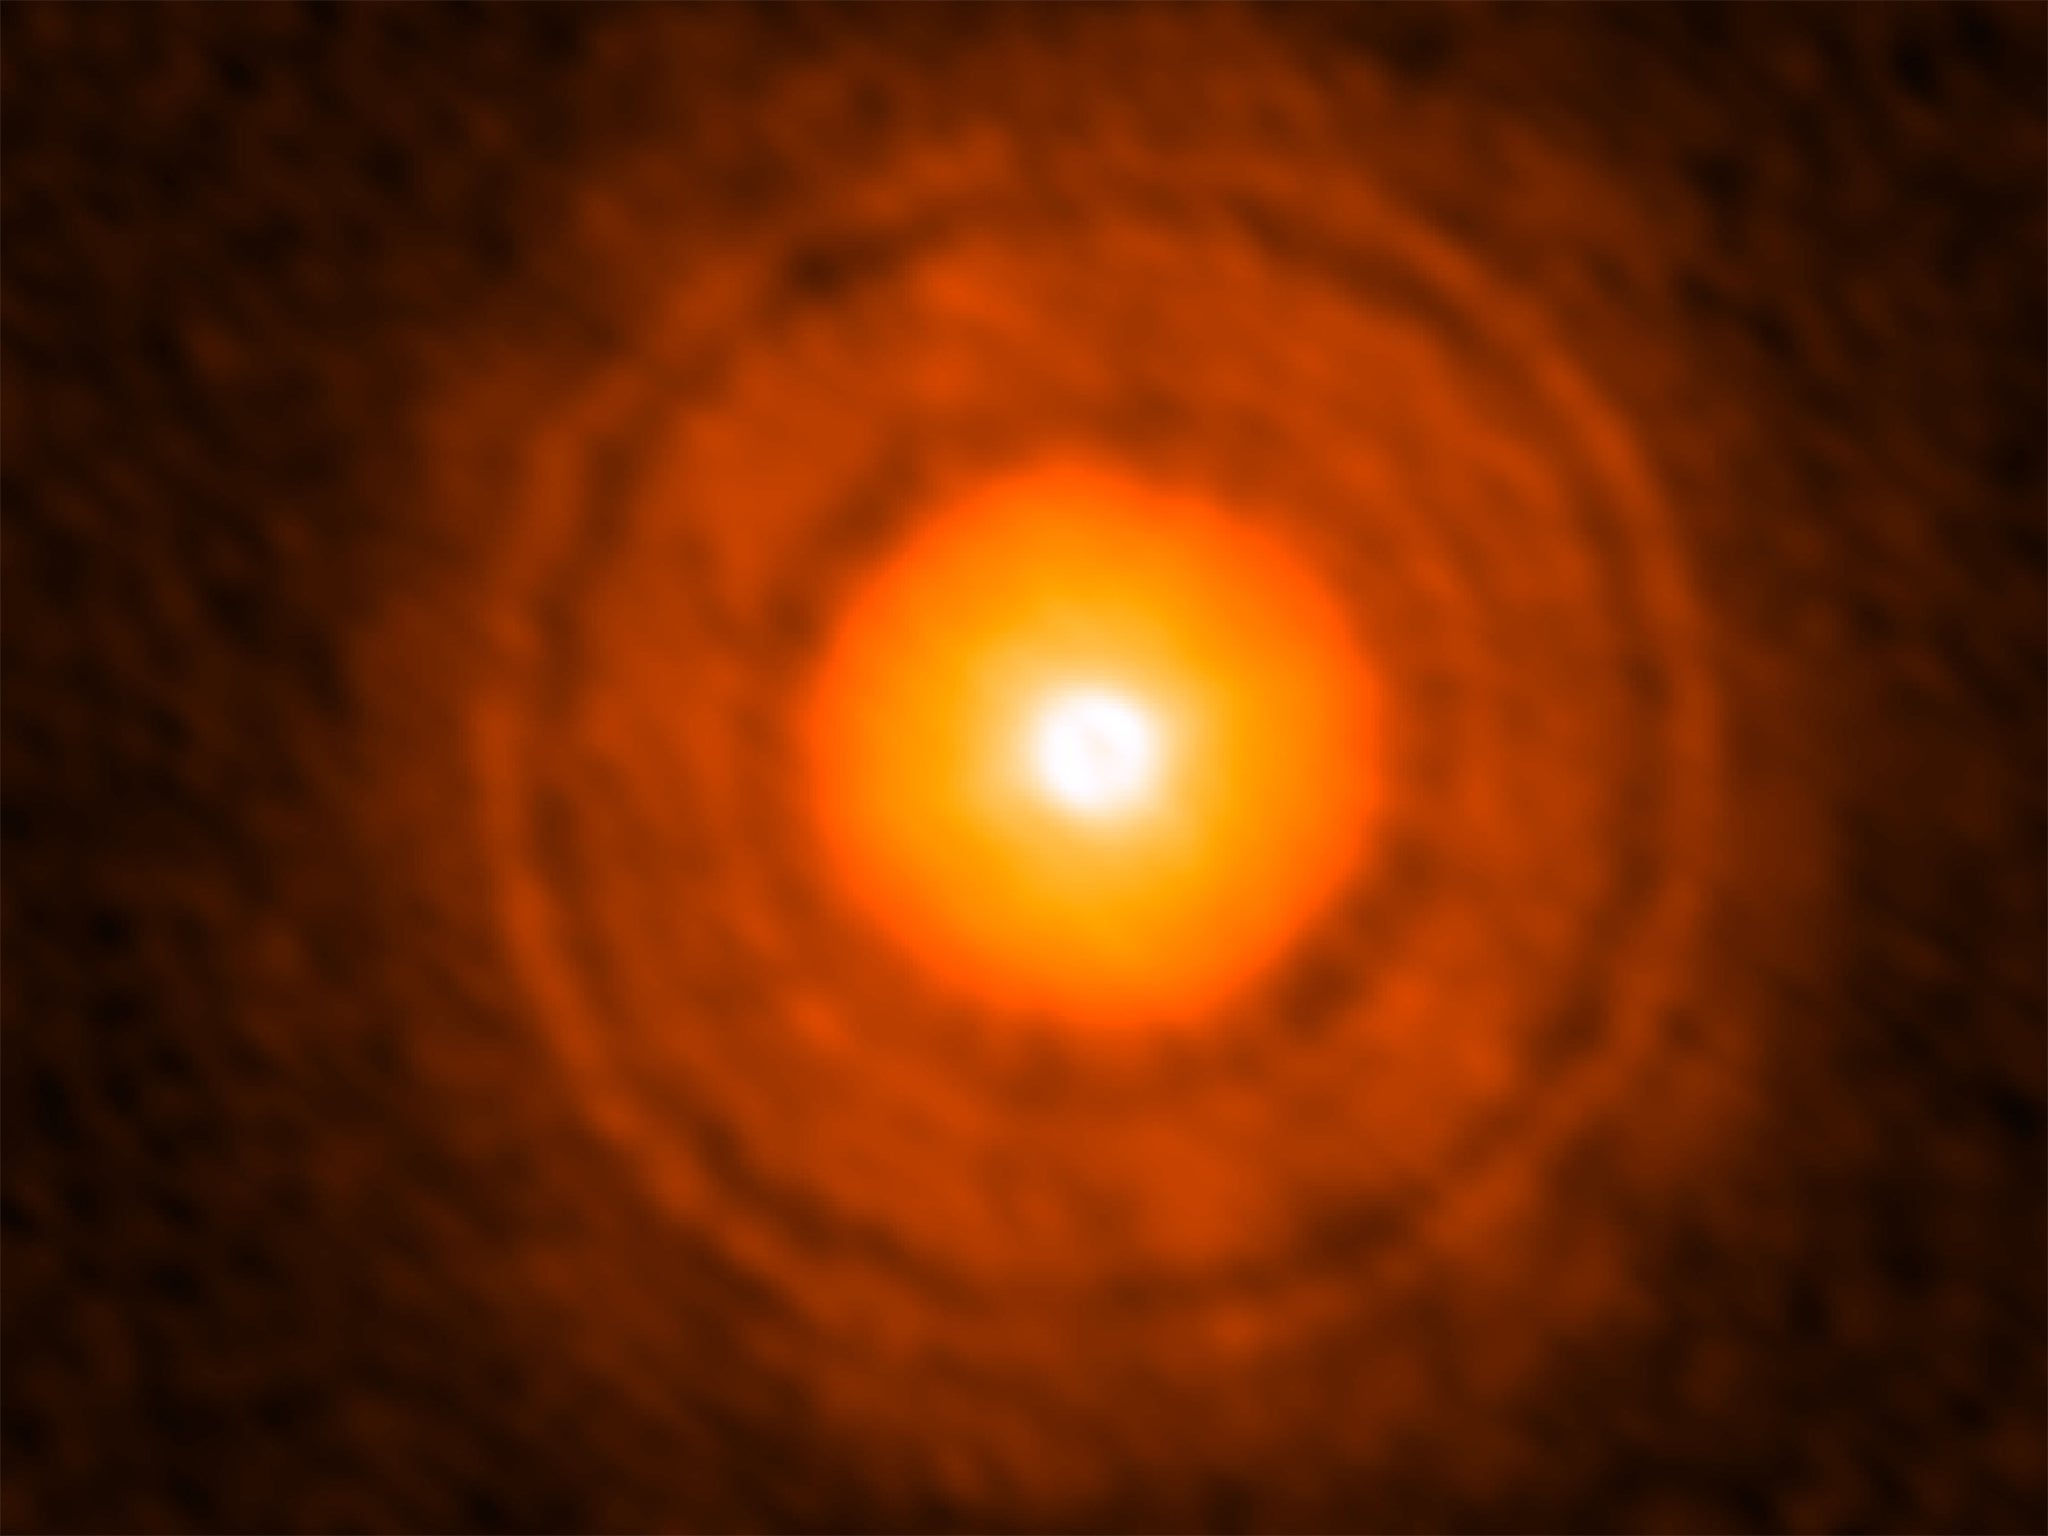 Astronomers discover signs of giant planet being born in star's dust cloud